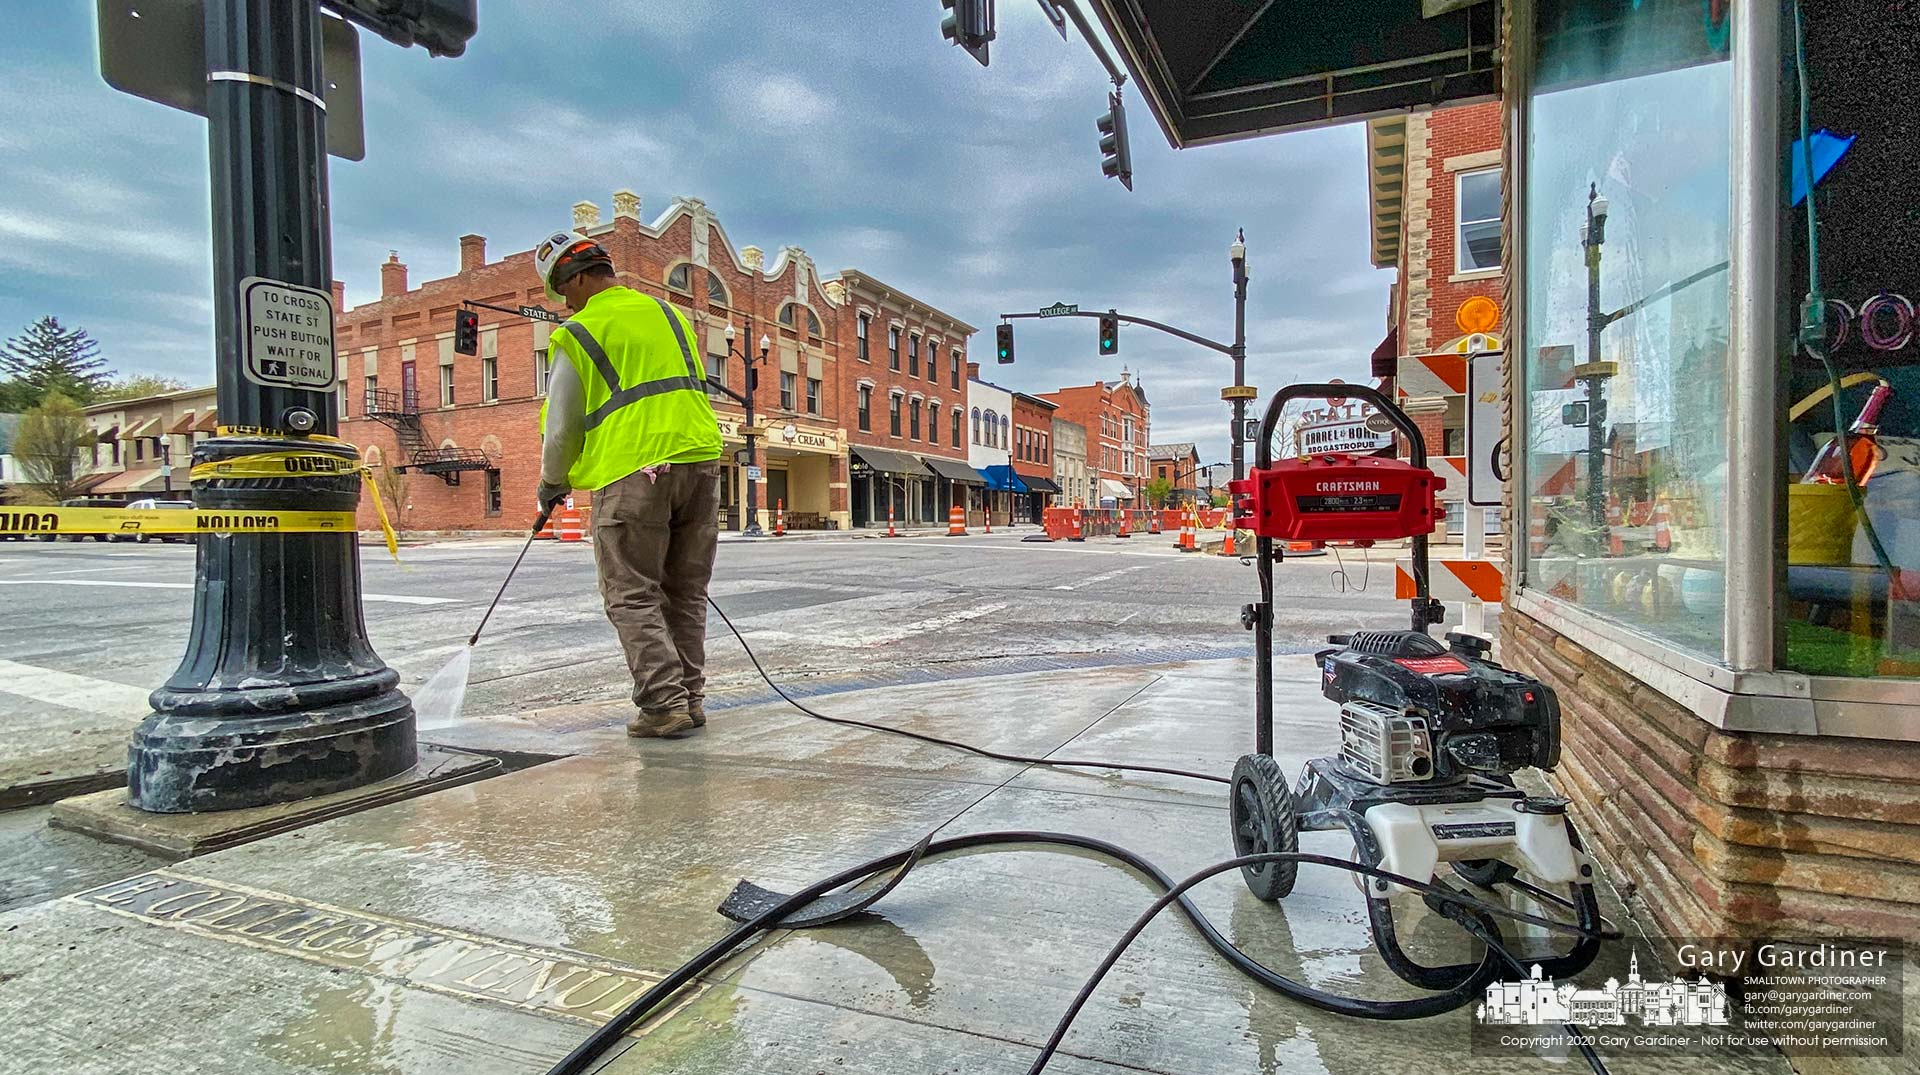 Sections of new sidewalk in Uptown Westerville are cleaned with a pressure washer as the accelerated construction schedule means earlier completion of portions of the Uptown Improvement Project are completed ahead of schedule. My Final Photo for April 22, 2020.